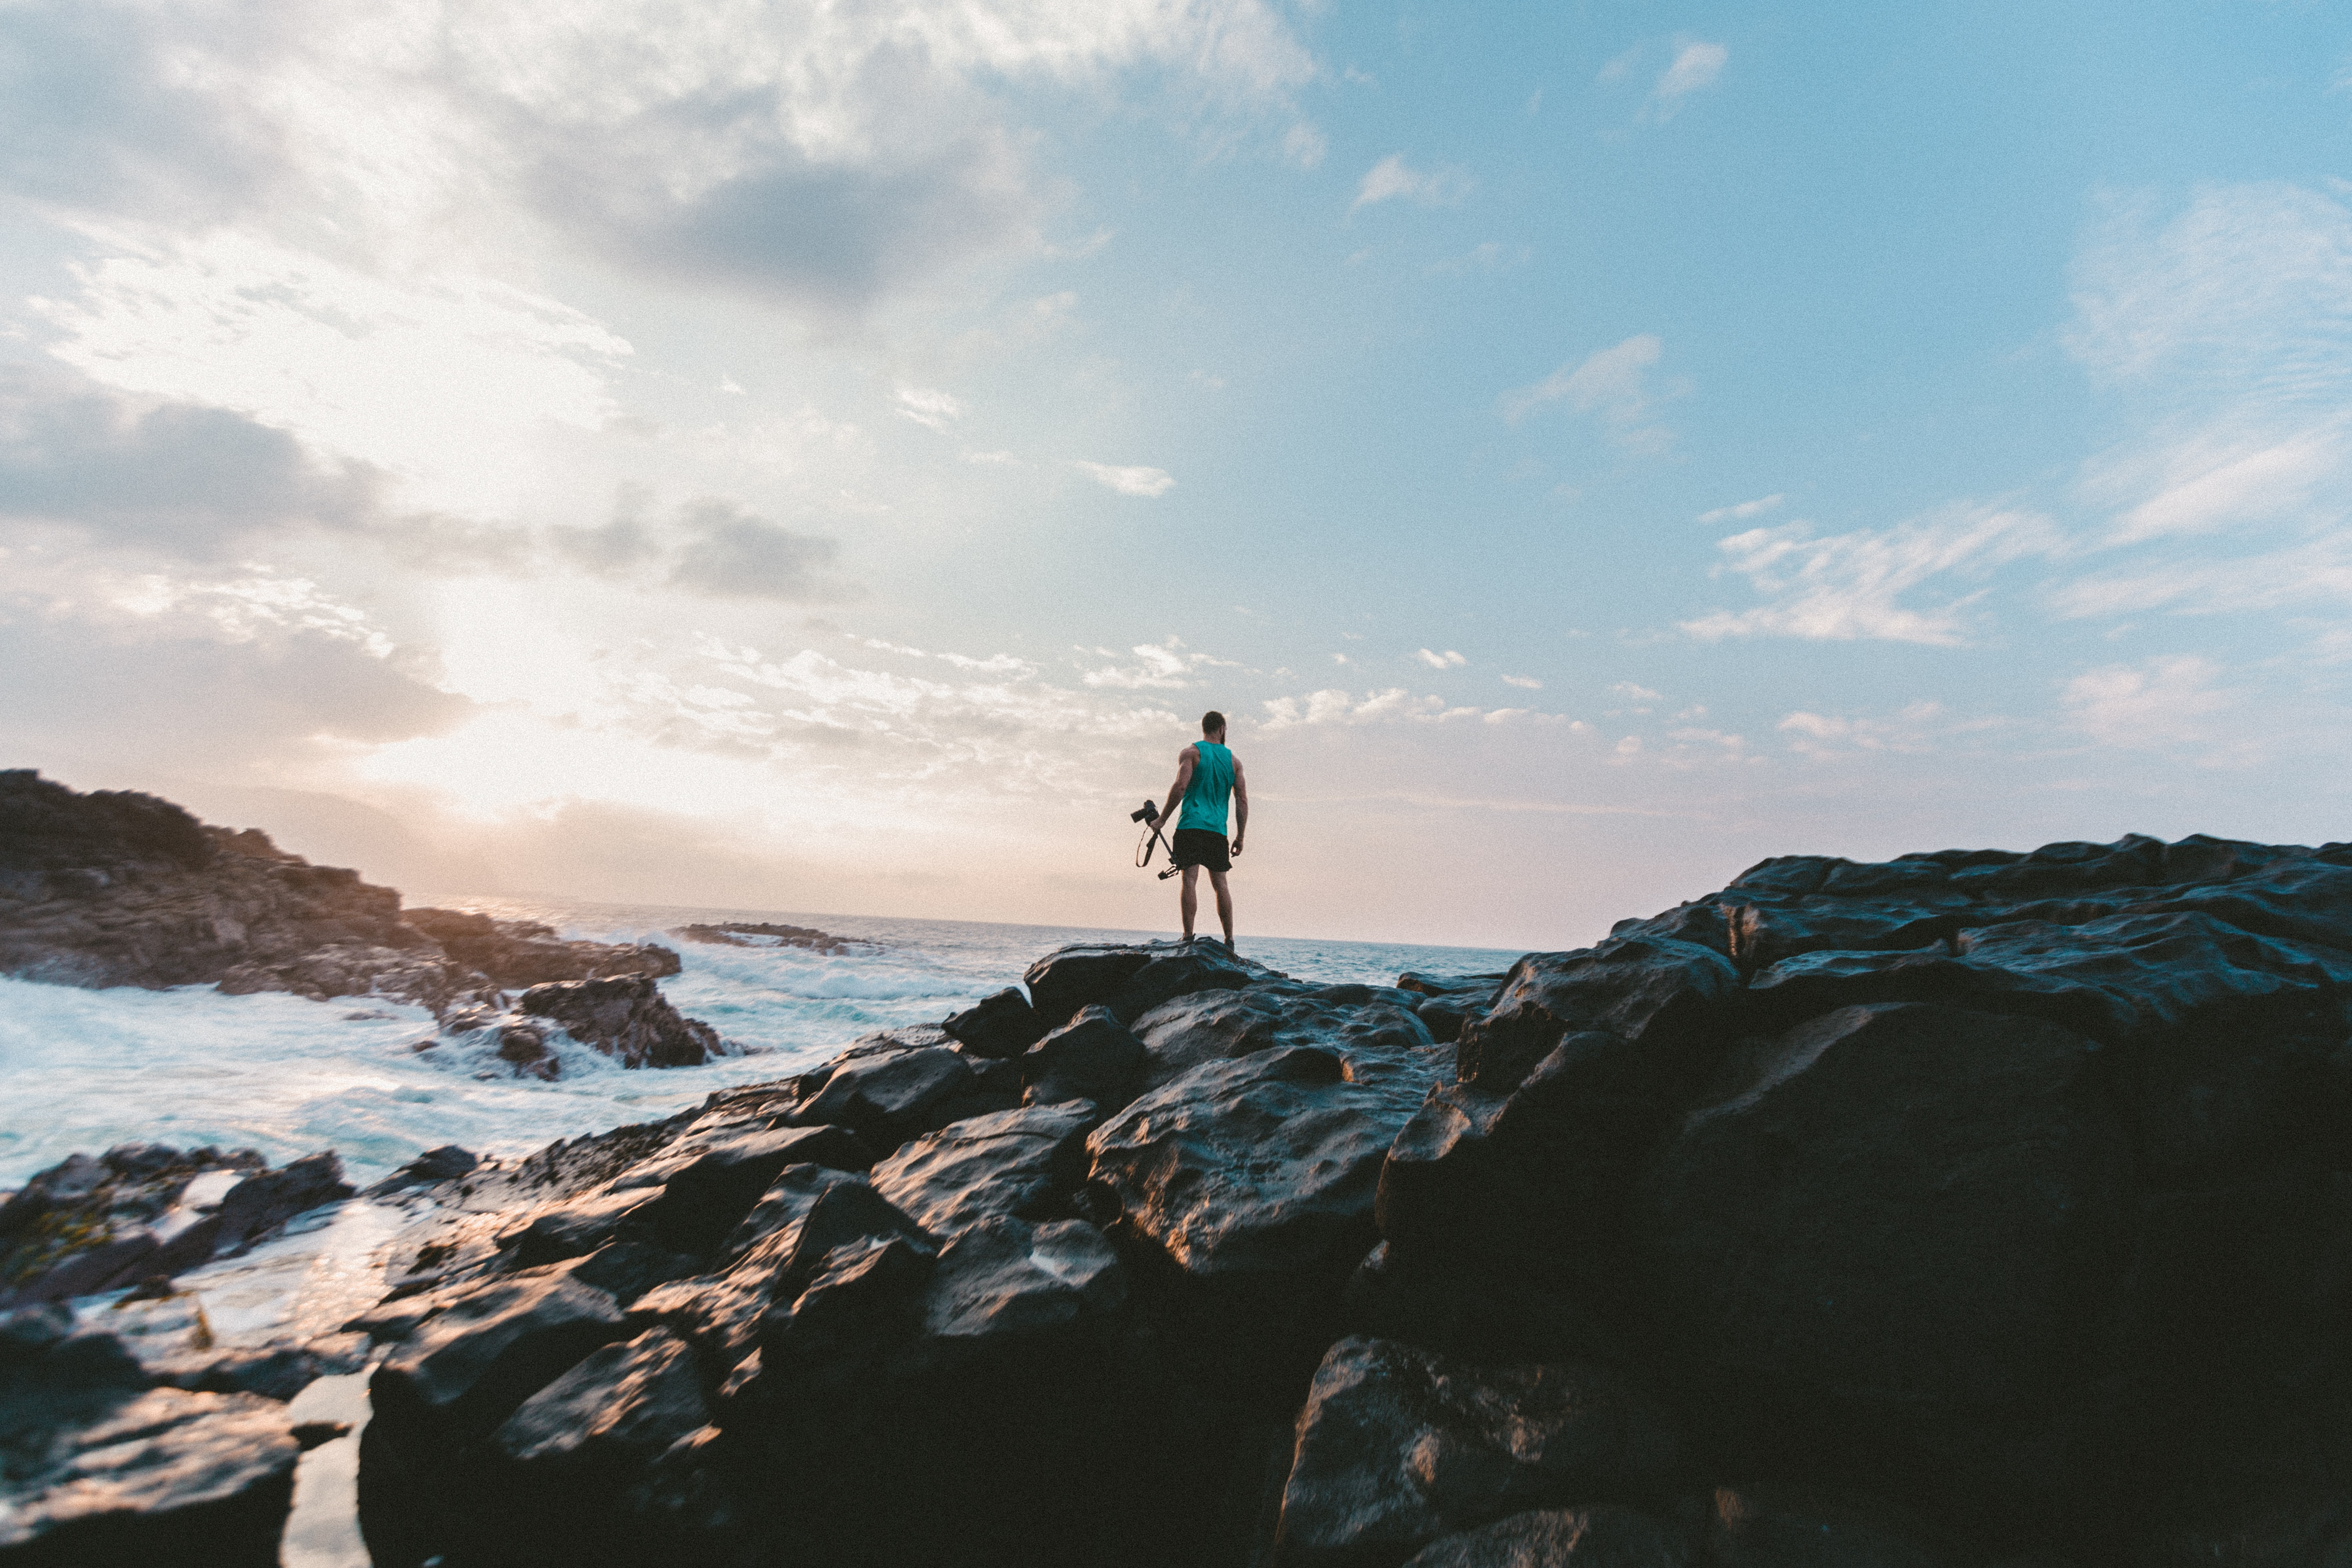 man standing on rocky shore under cloudy sky